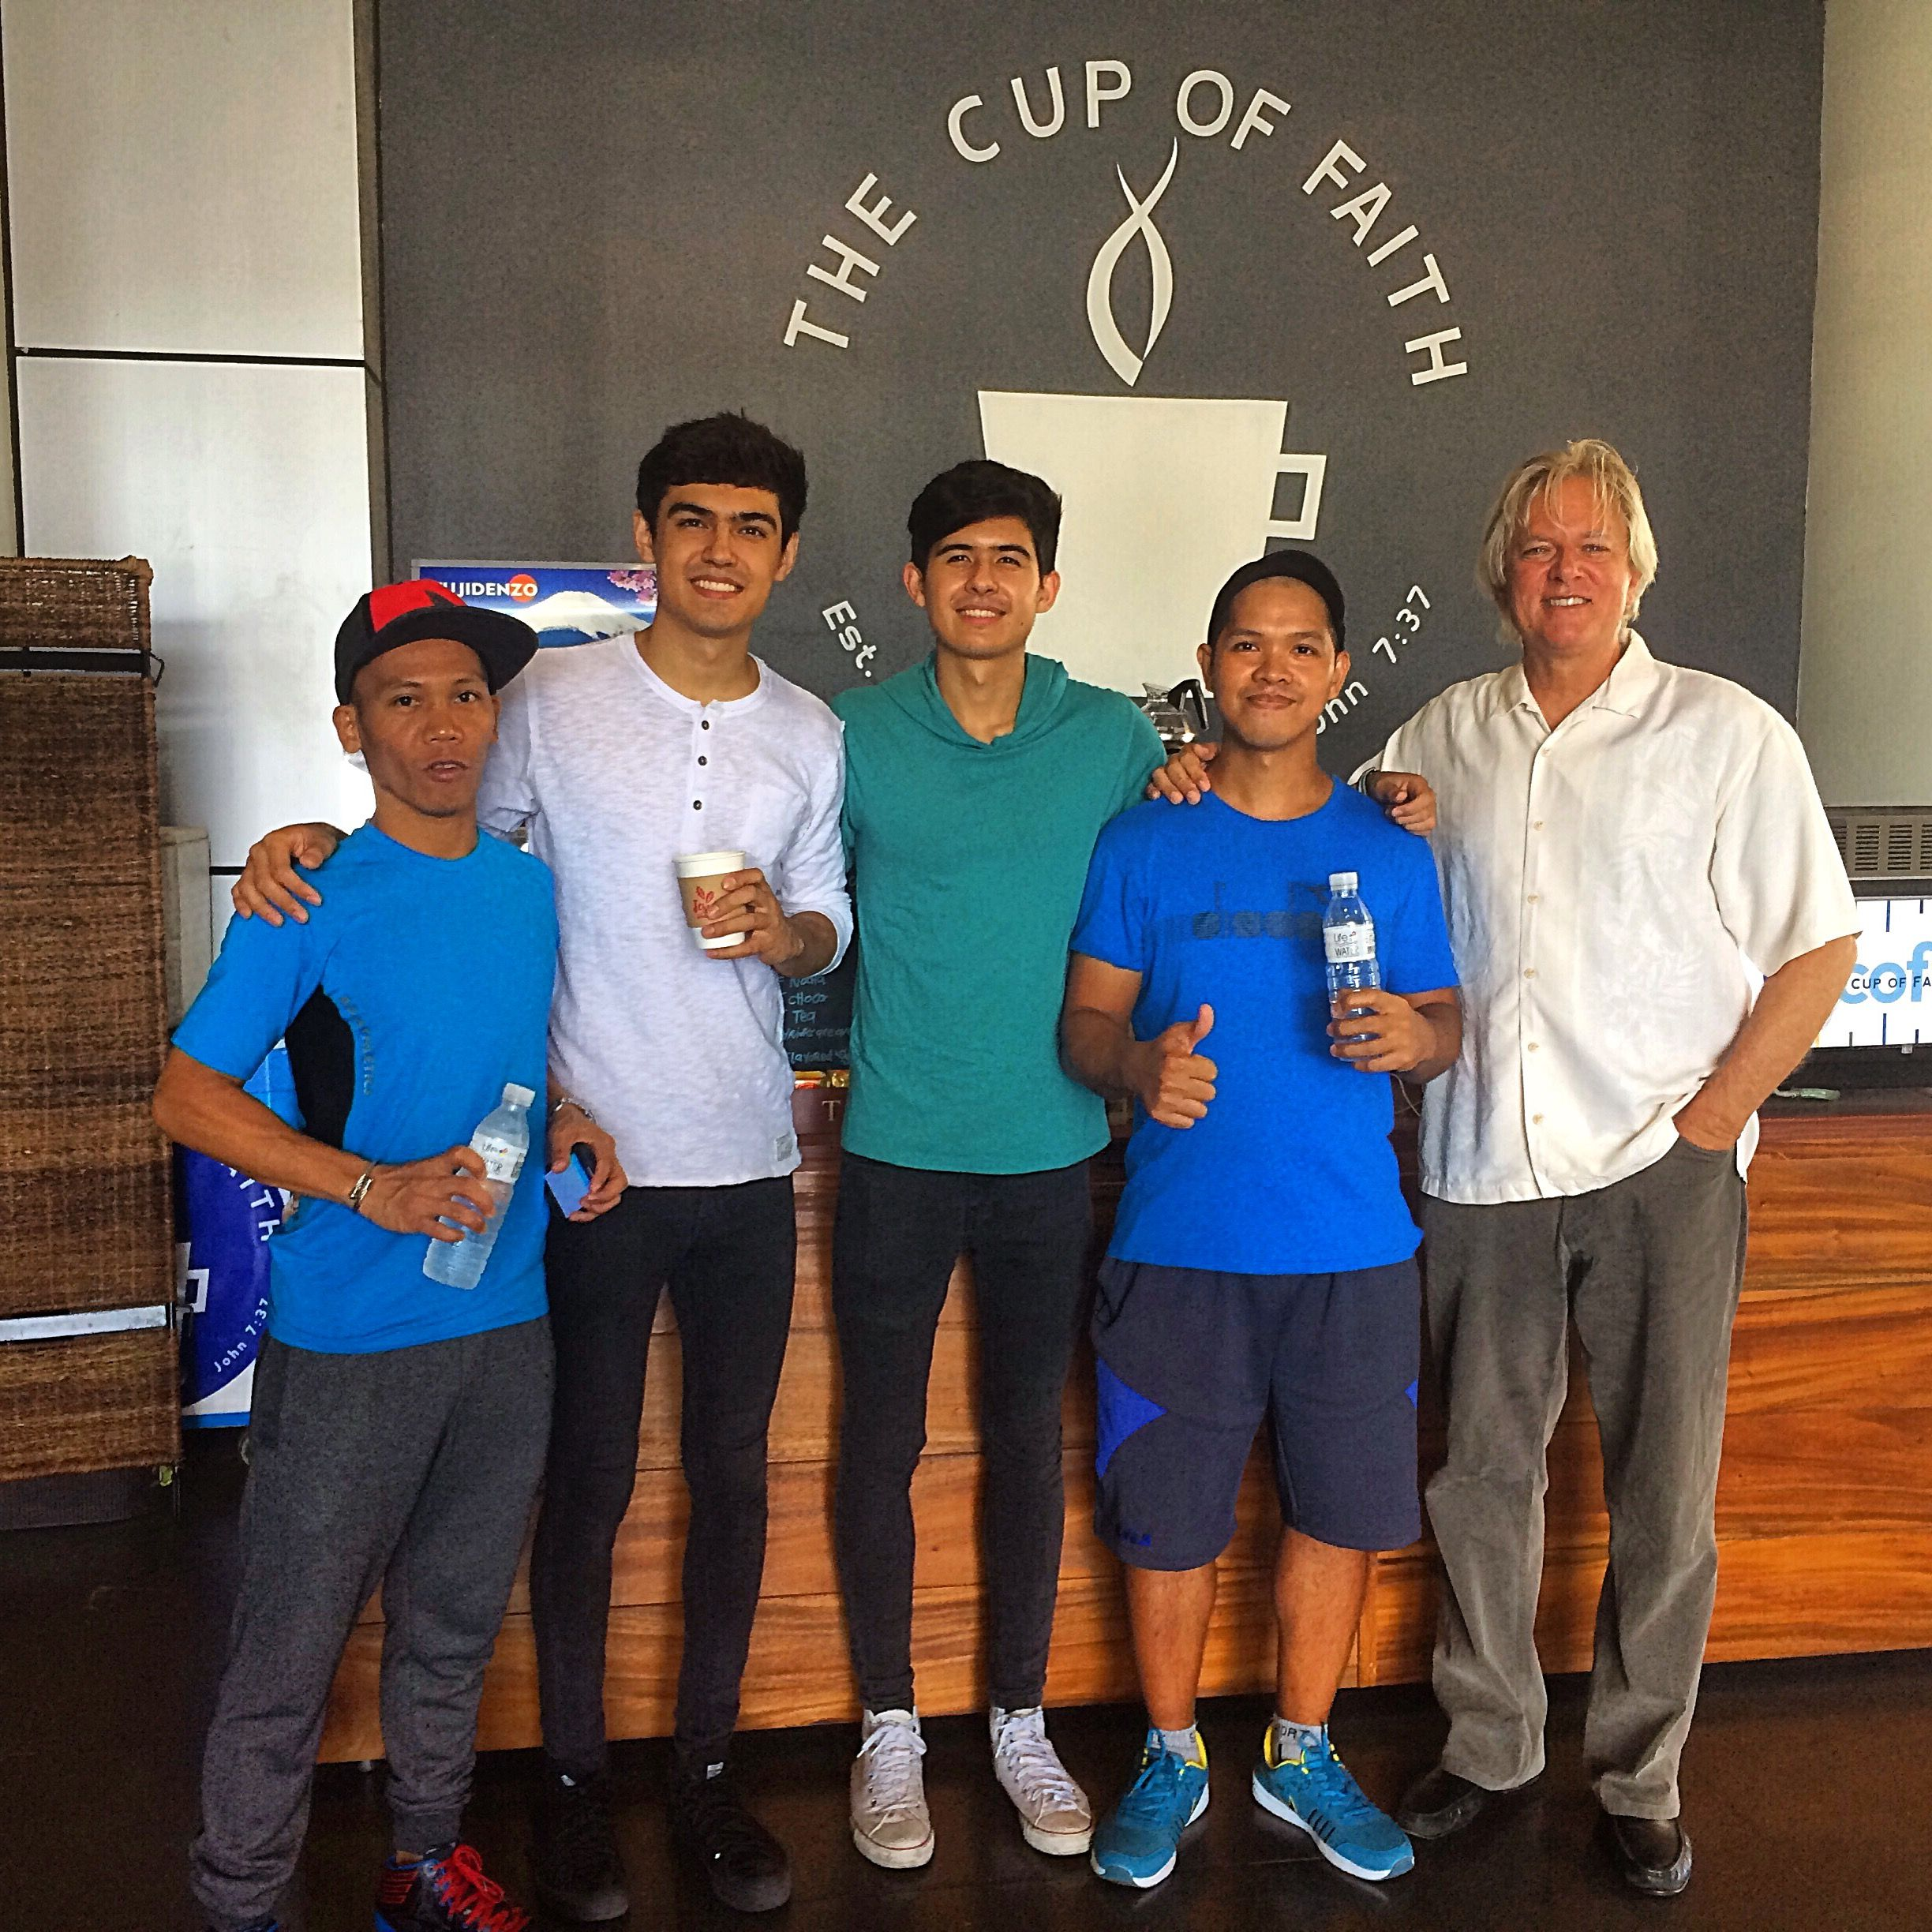 Philippine Tennis Coaches from the Perkins Twins Tennis Academy in the Philippines visit The Cup of Faith coffee.  info@thecupoffaith.com